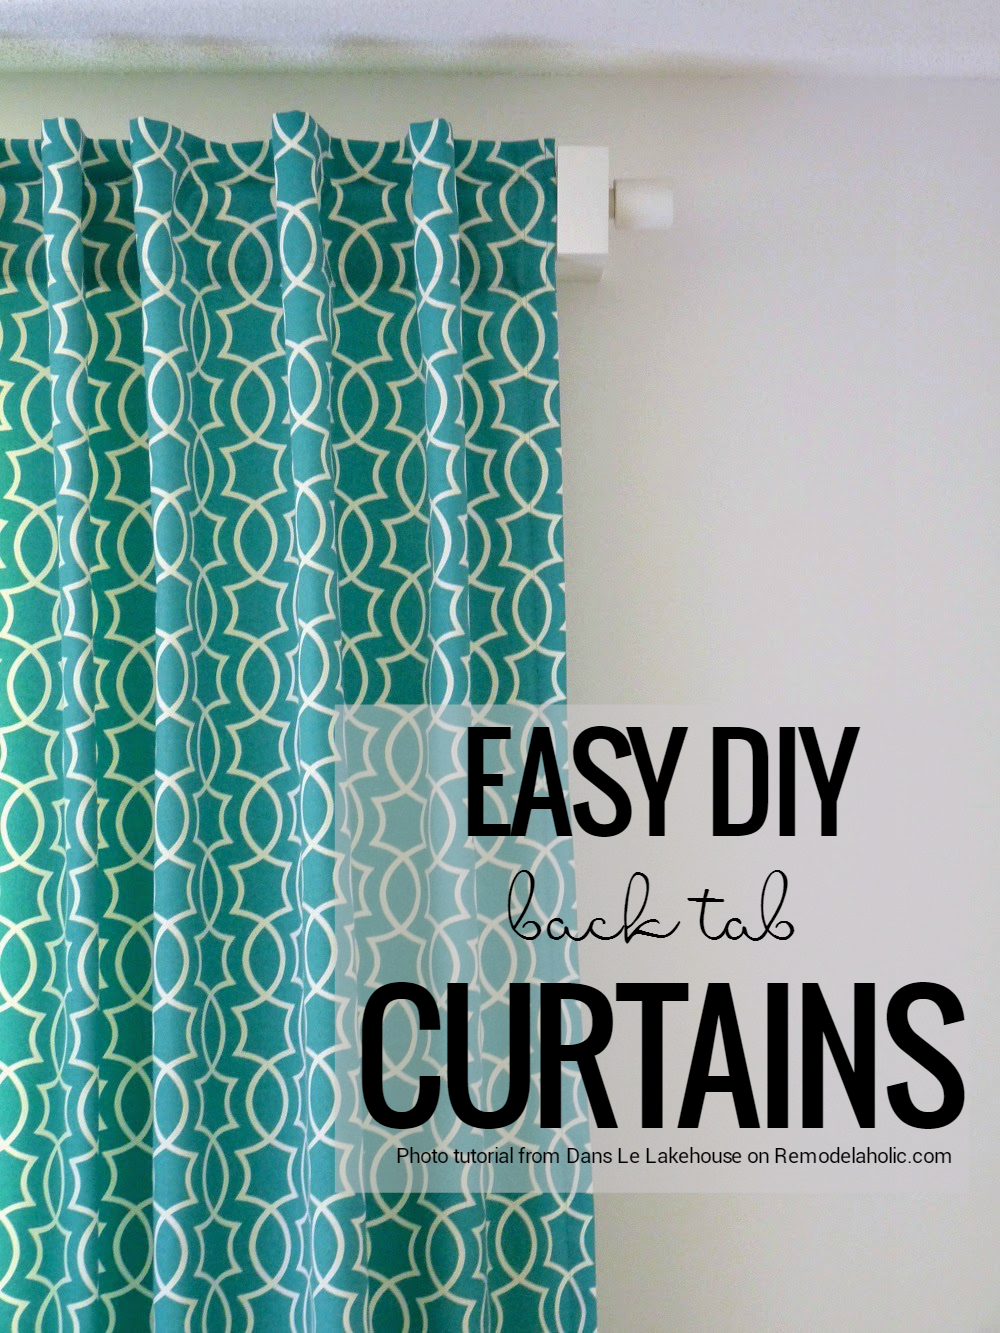 How to make simple curtains - Make Your Own Custom Back Tab Curtains From Any Fabric You Love With This Detailed Photo